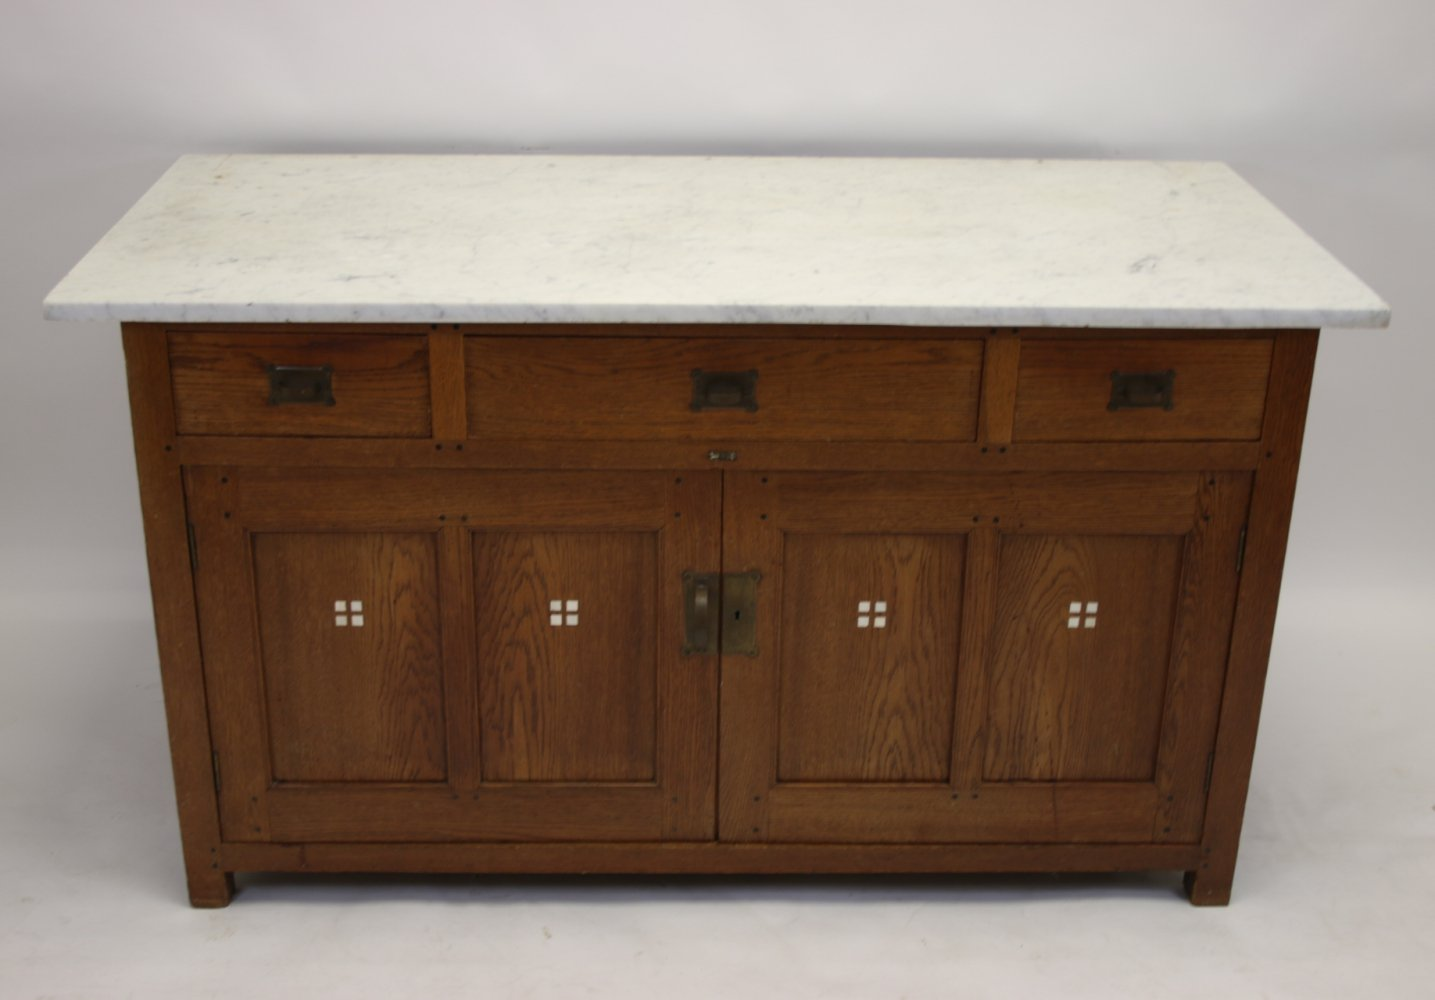 Art Deco sideboard with white marble top, 1920s